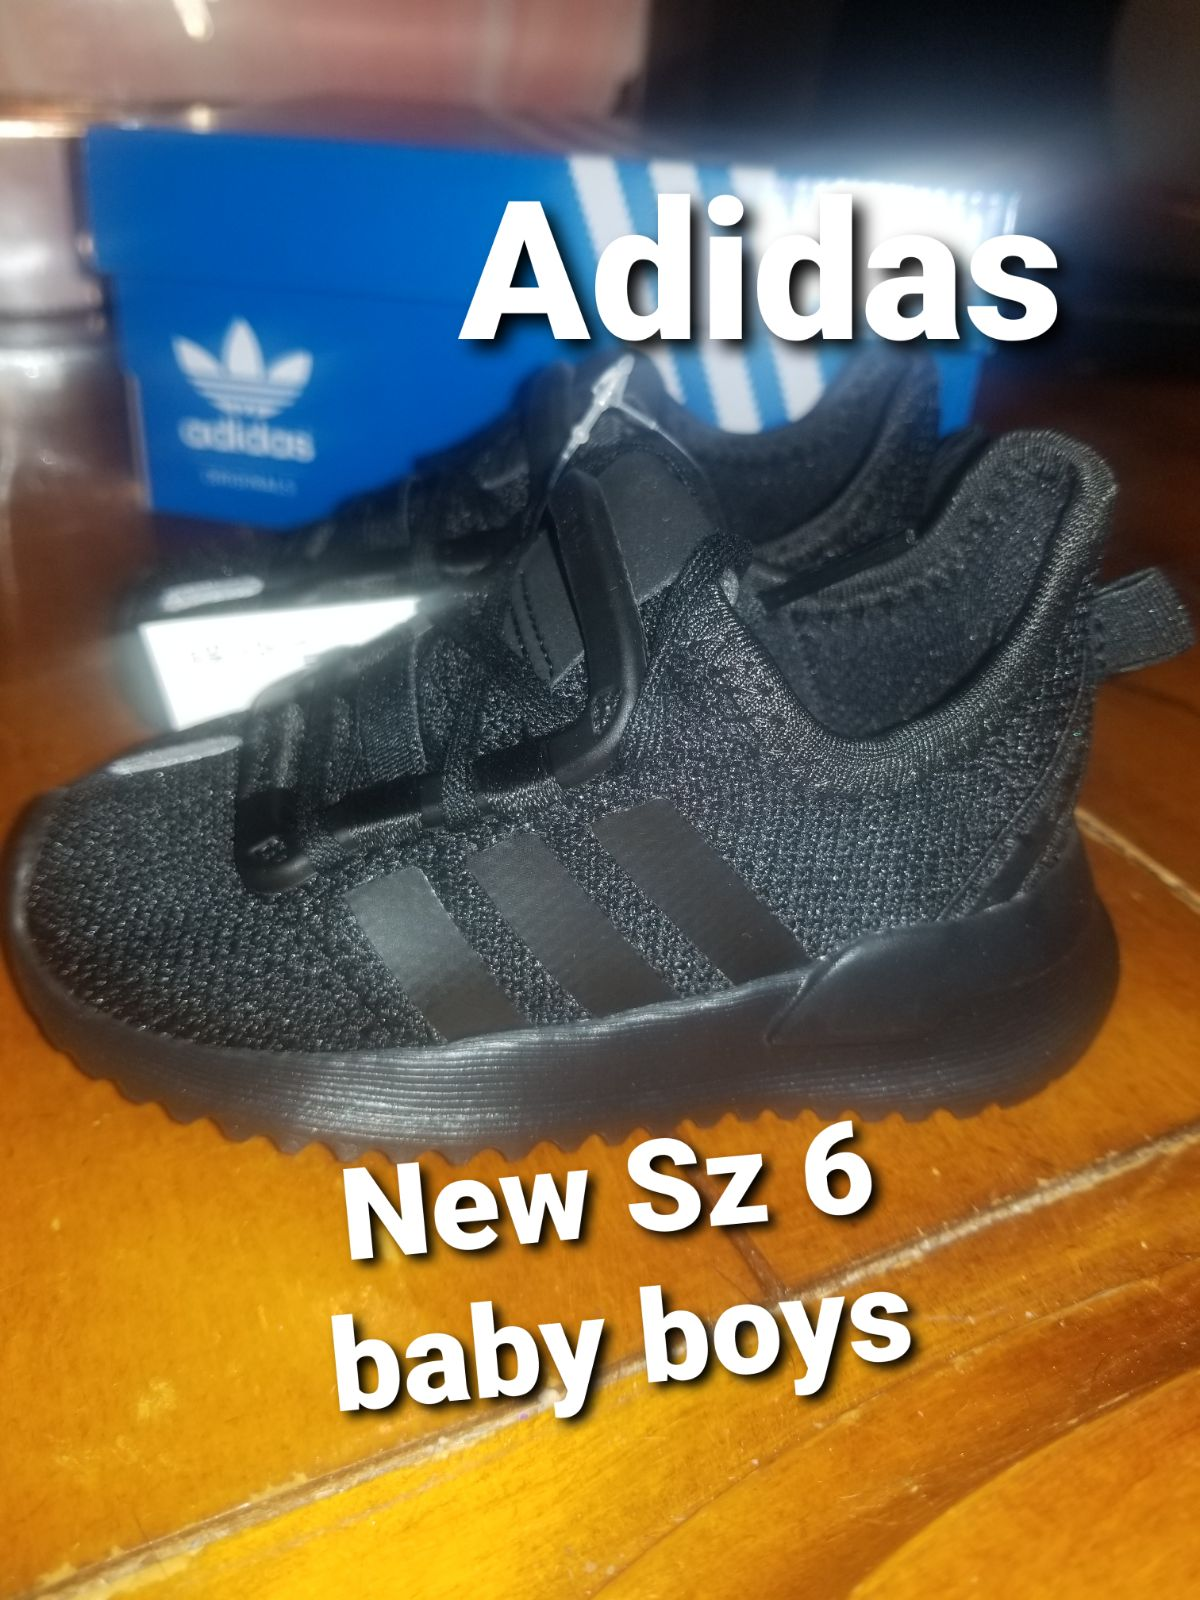 New baby boys size 6 Adidas shoes 6K